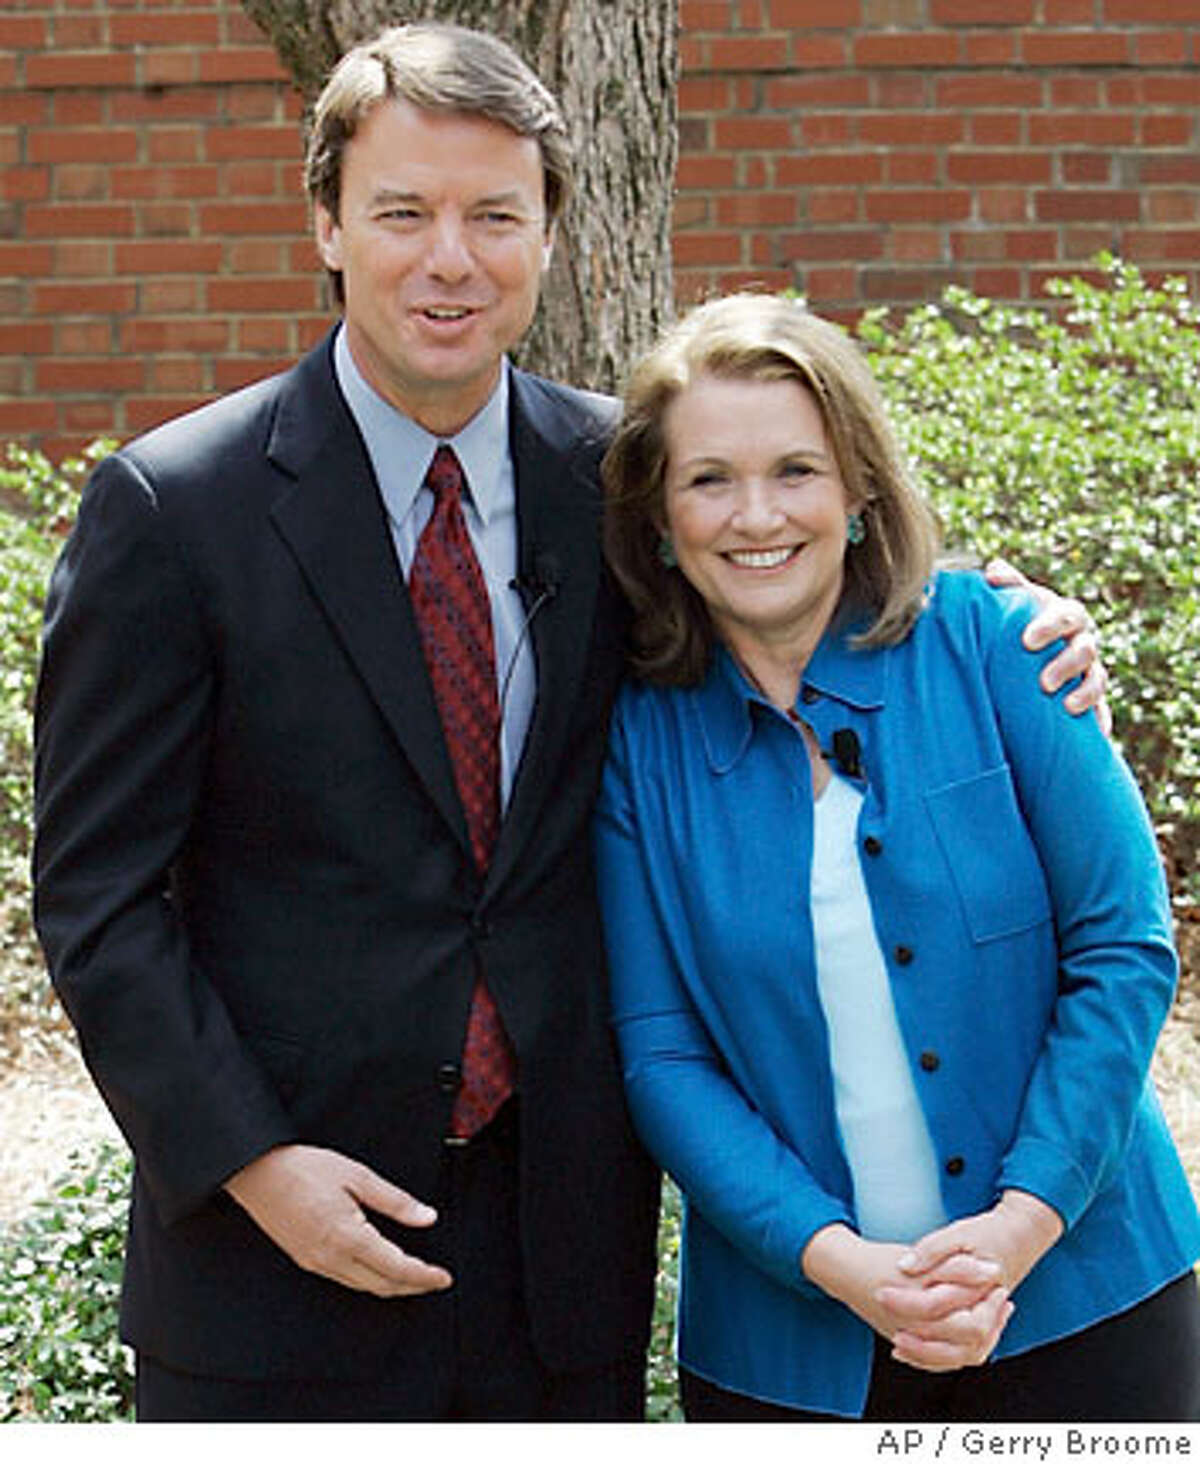 Democratic Presidential hopeful John Edwards hugs his wife Elizabeth while they speak about Elizabeth's recurrence of cancer during a news conference in Chapel Hill, N.C., Thursday, March 22, 2007. Edwards will continue his campaign for the presidency. (AP Photo/Gerry Broome)